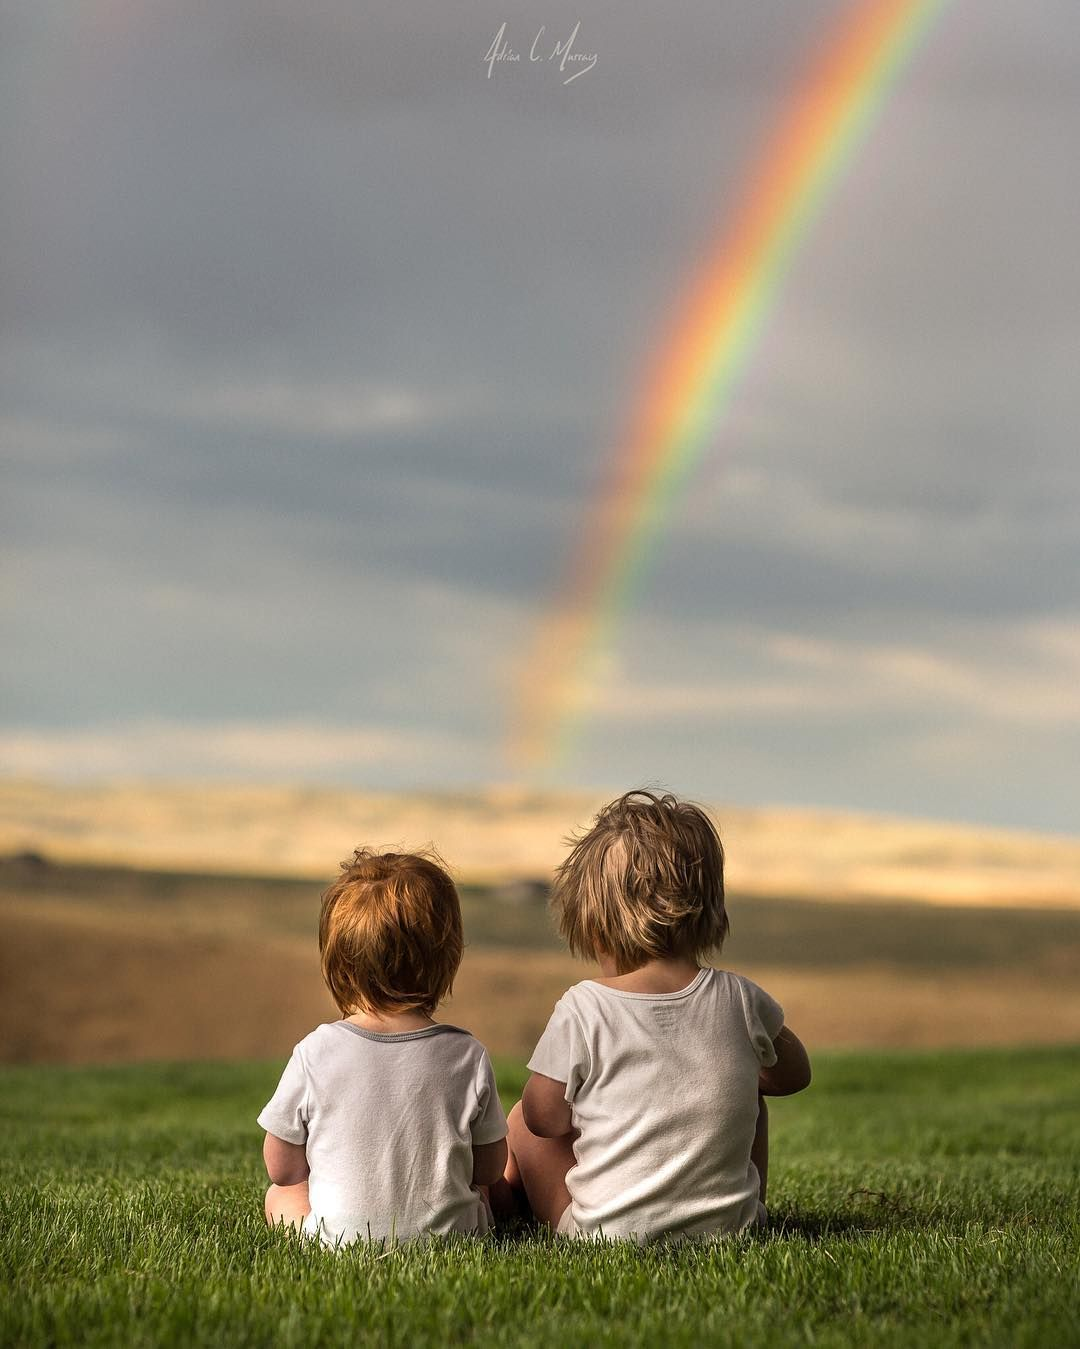 I Know What S At The End Of My Rainbow What S At The End Of Yours